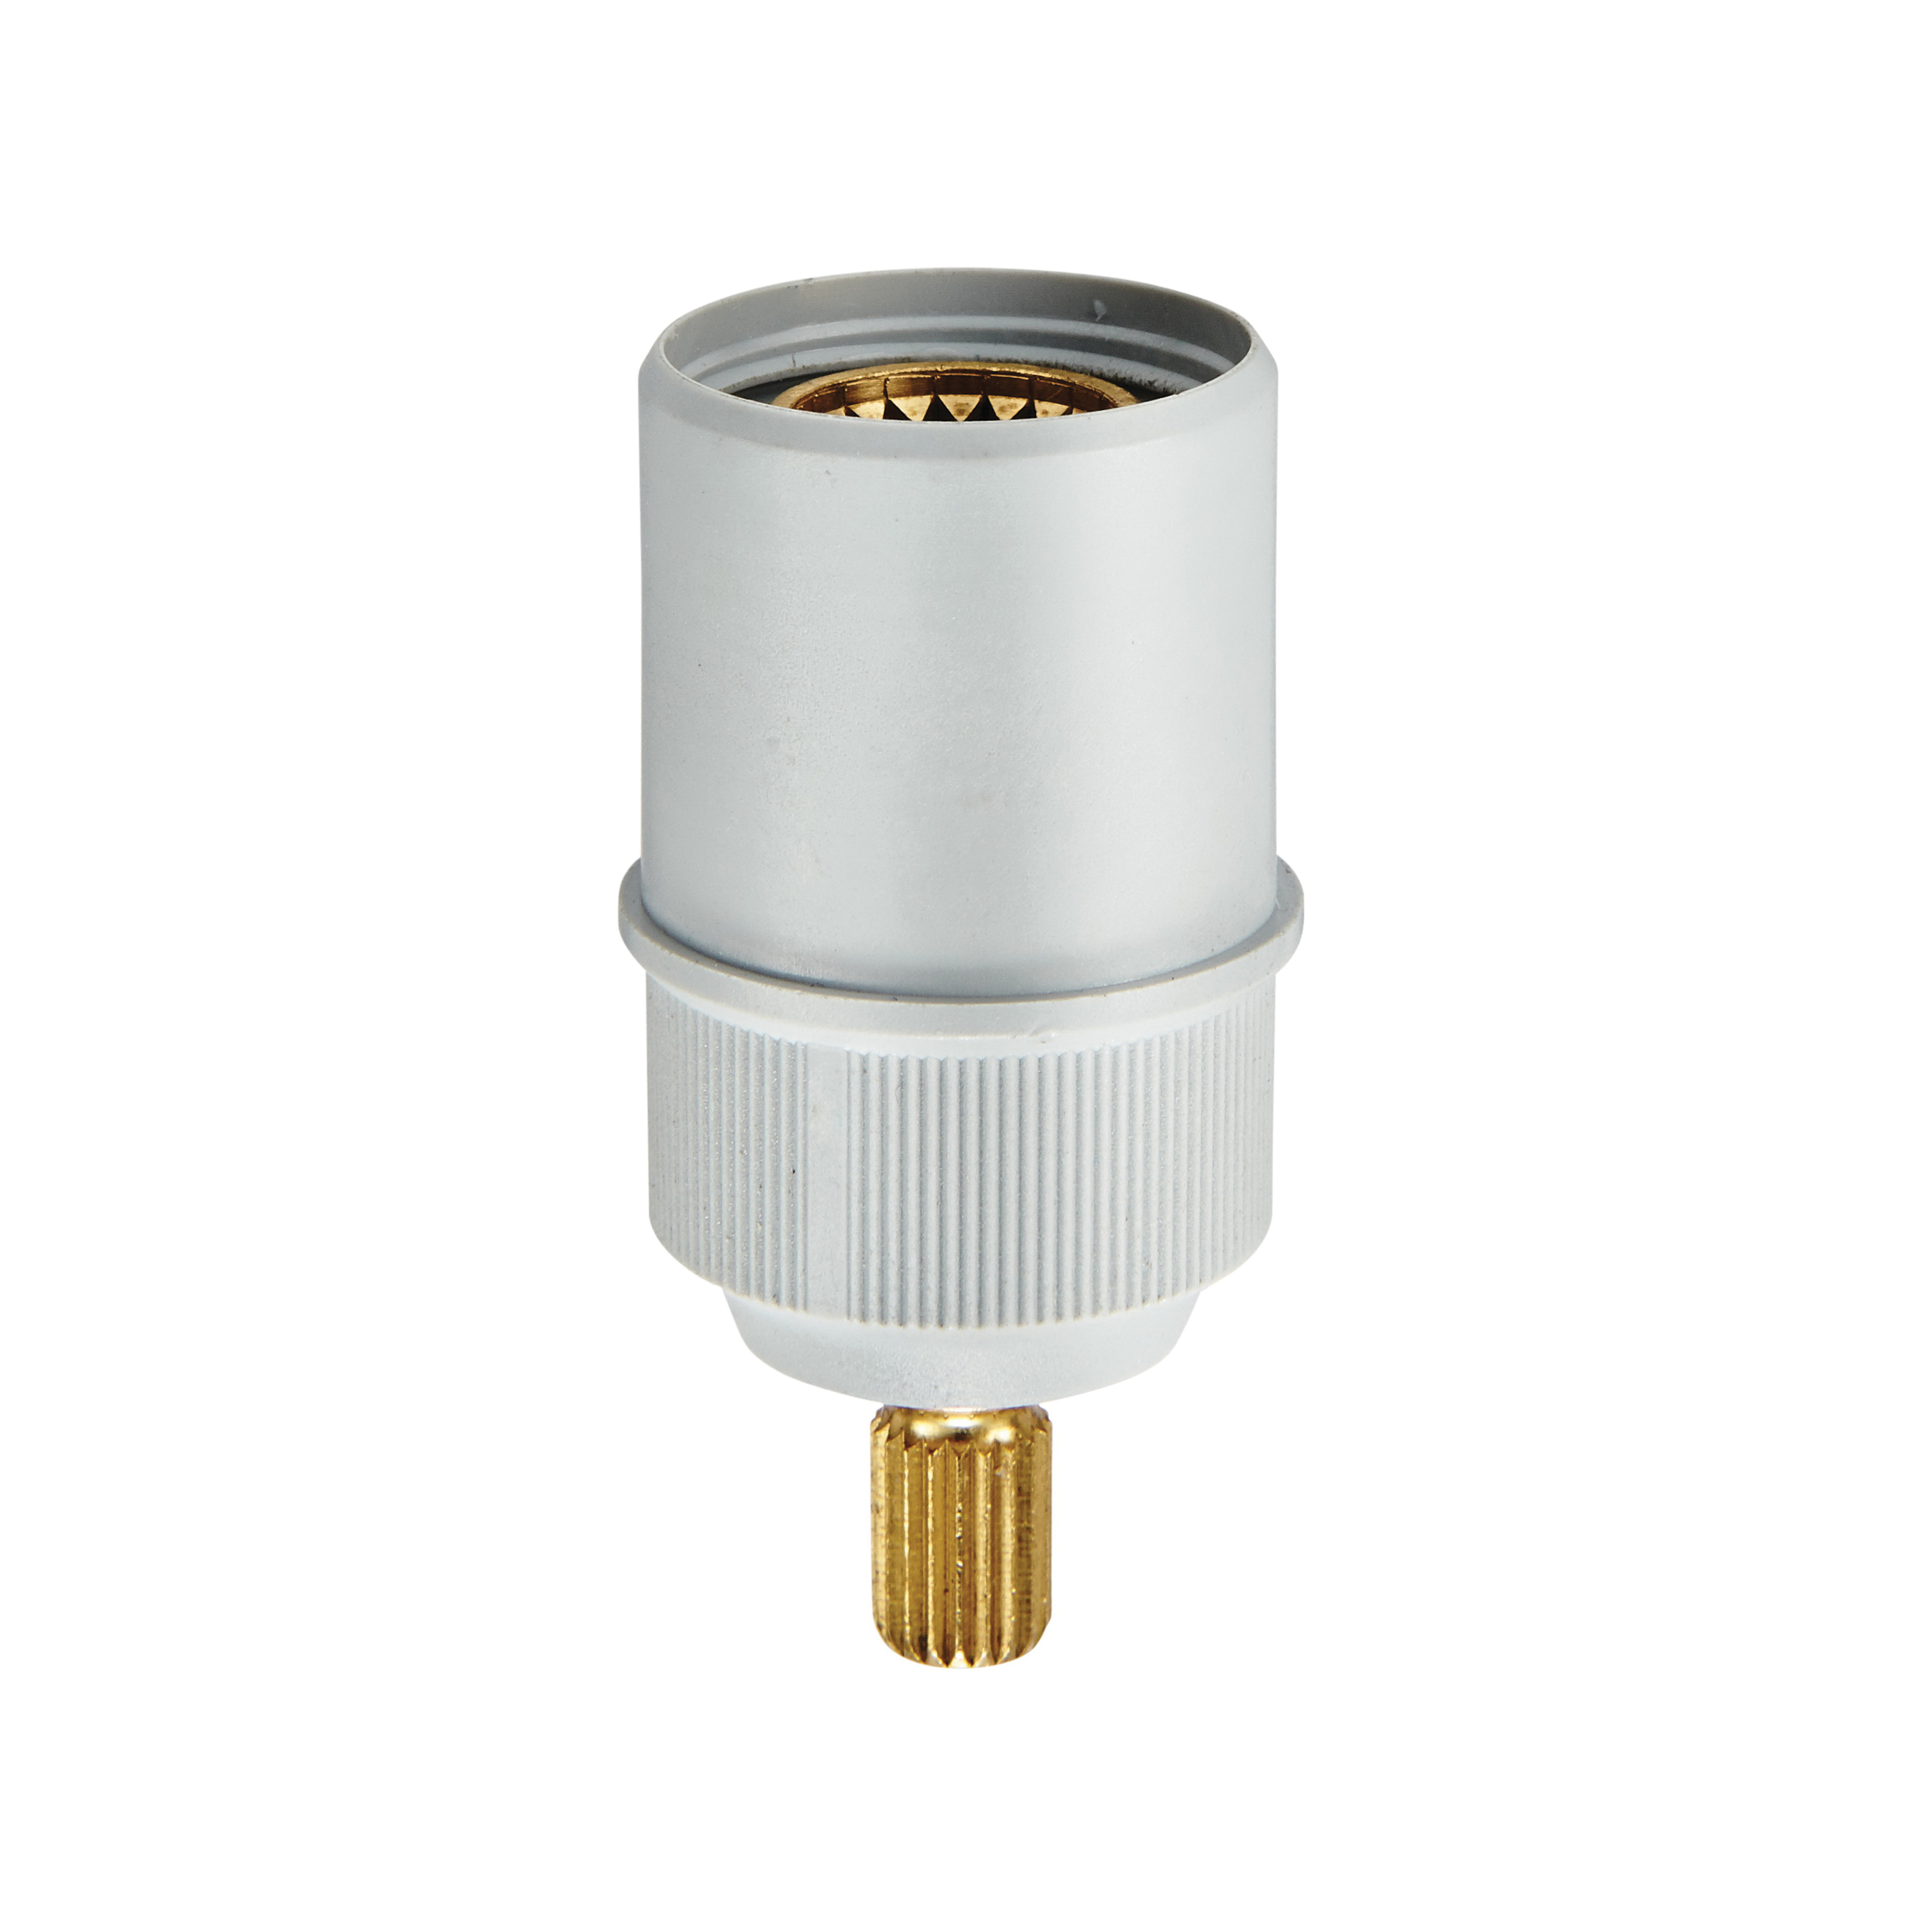 GROHE 45204000 Extension, For Use With Spindle and Low Profile Roman Tub, Import